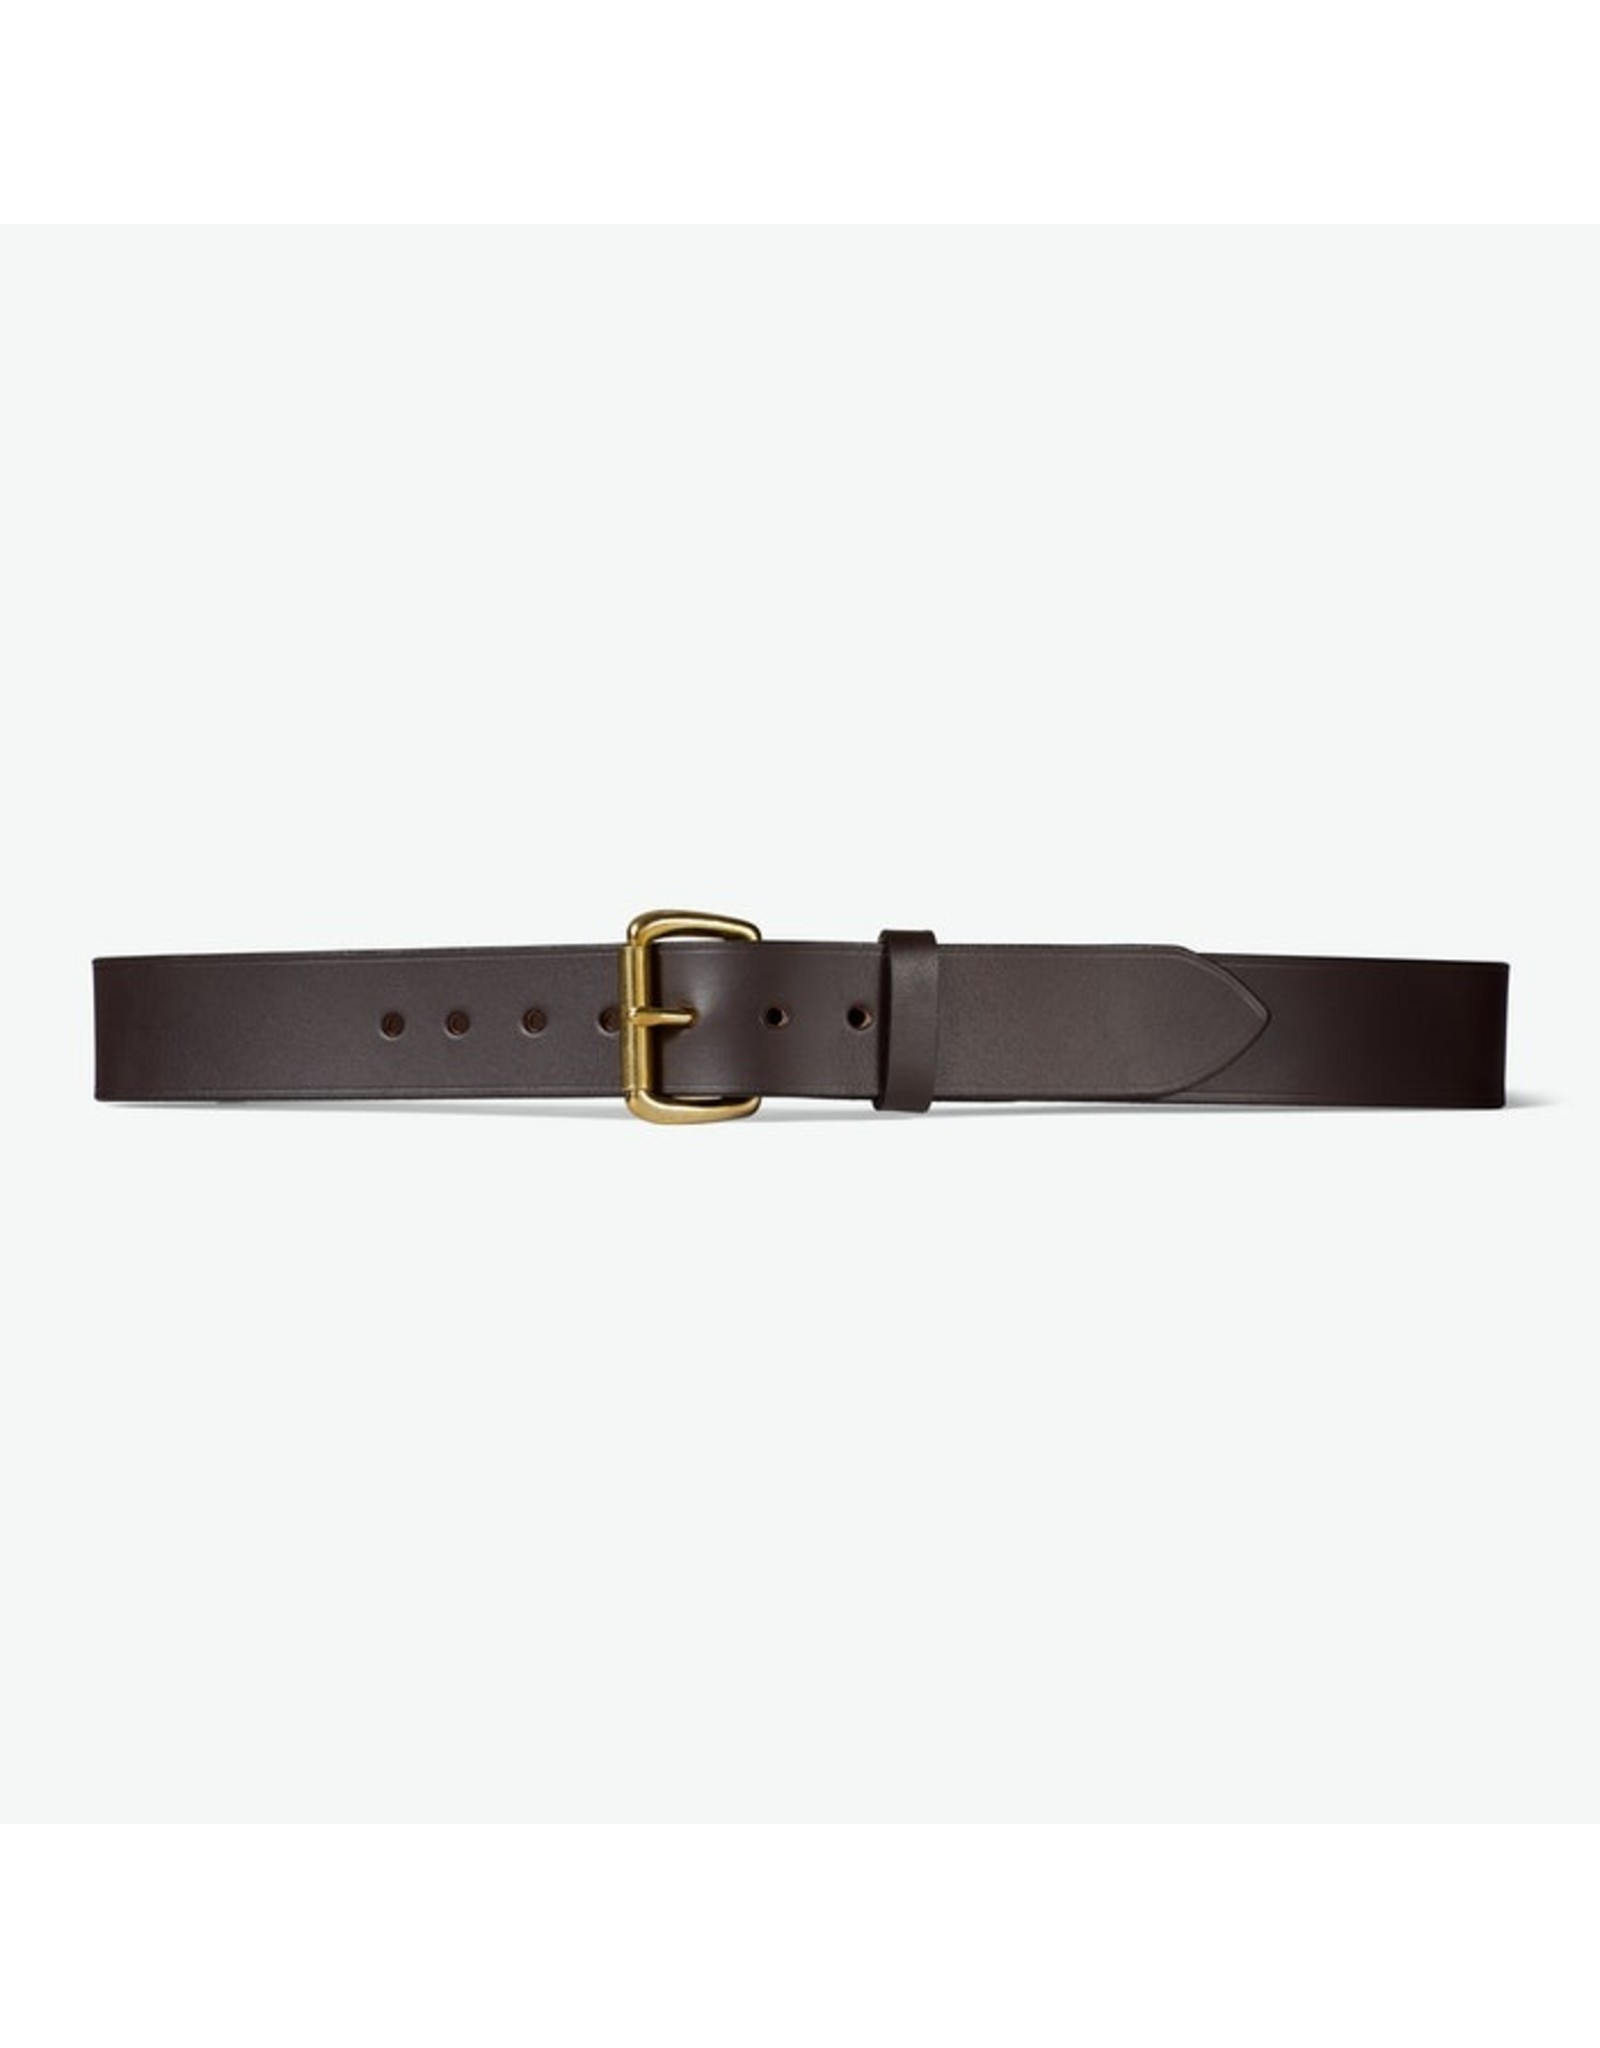 "Filson Filson 11063202 1-1/2"" Leather Belt - 4 Styles"